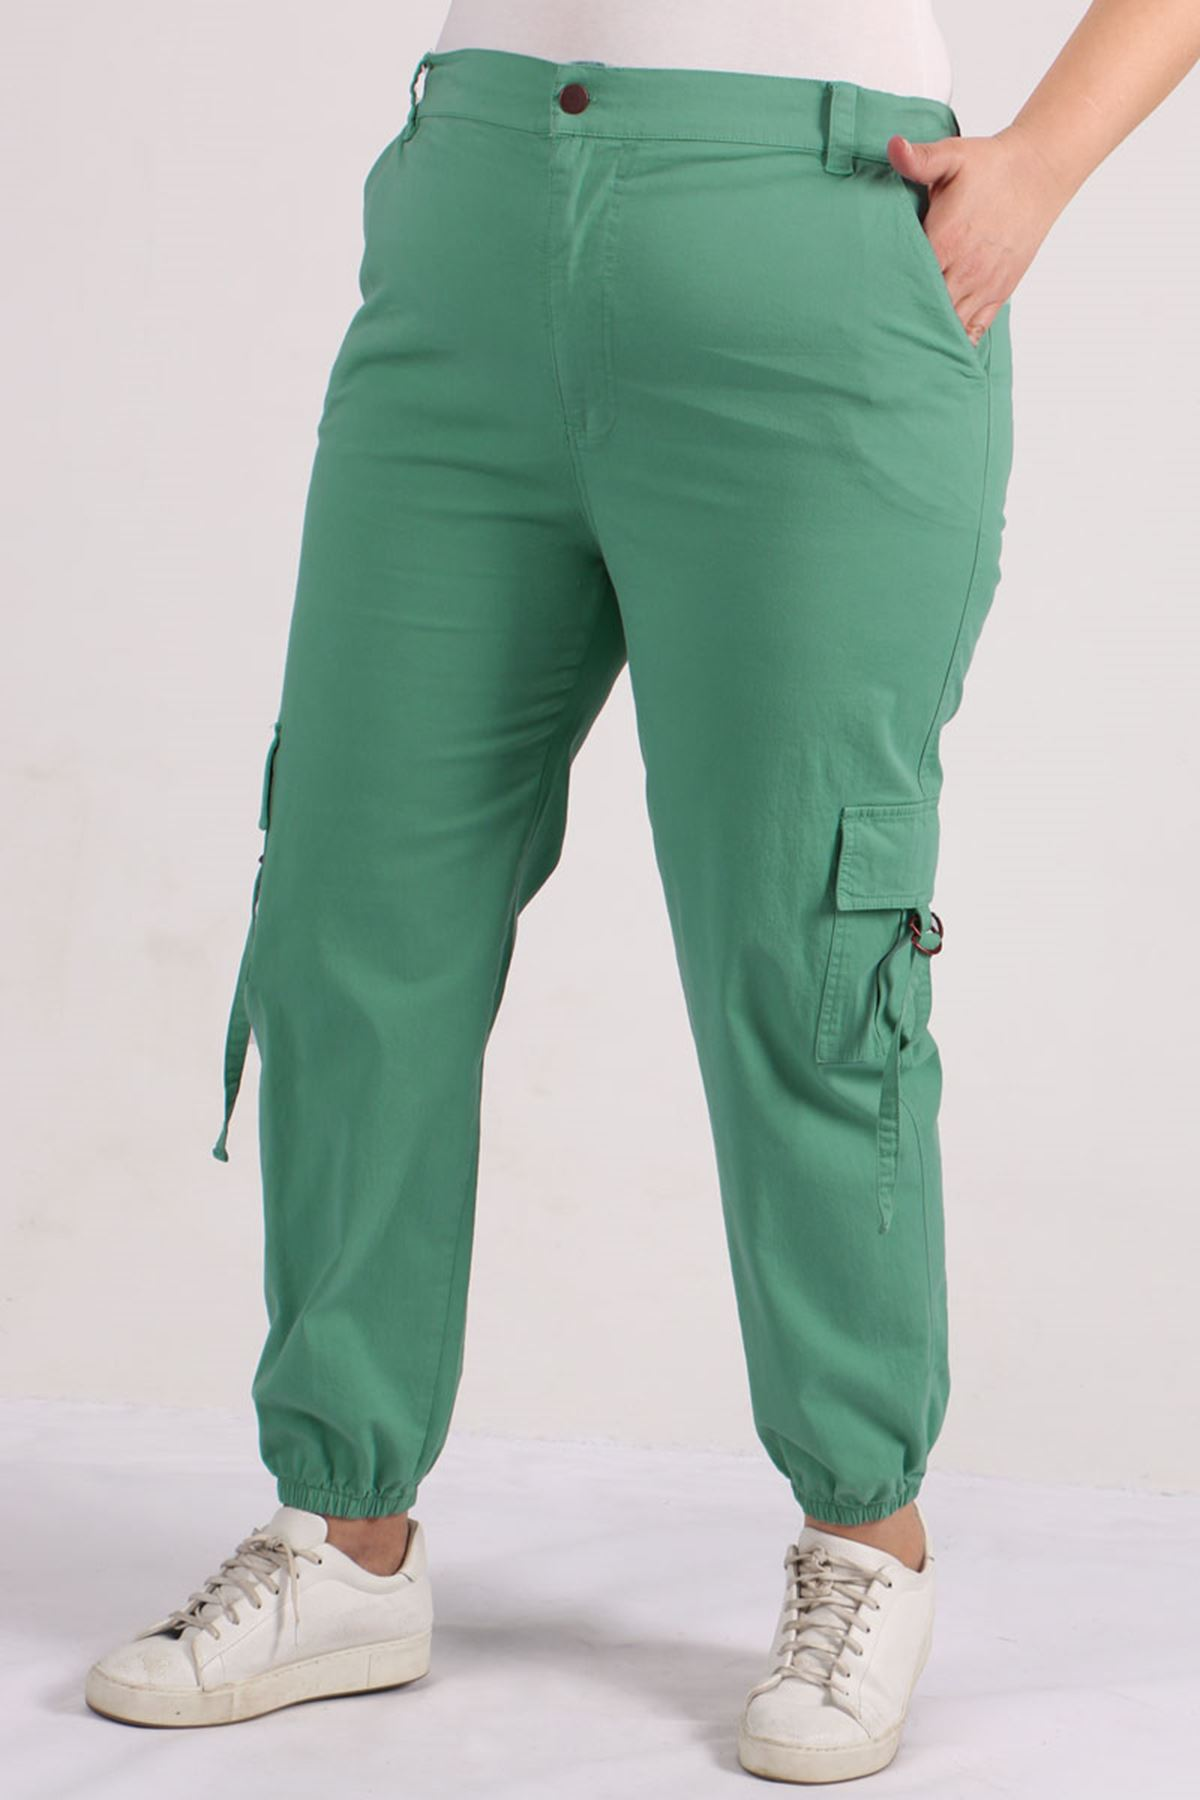 9128 Plus Size Cargo Pants with Pockets - Naphtha Green